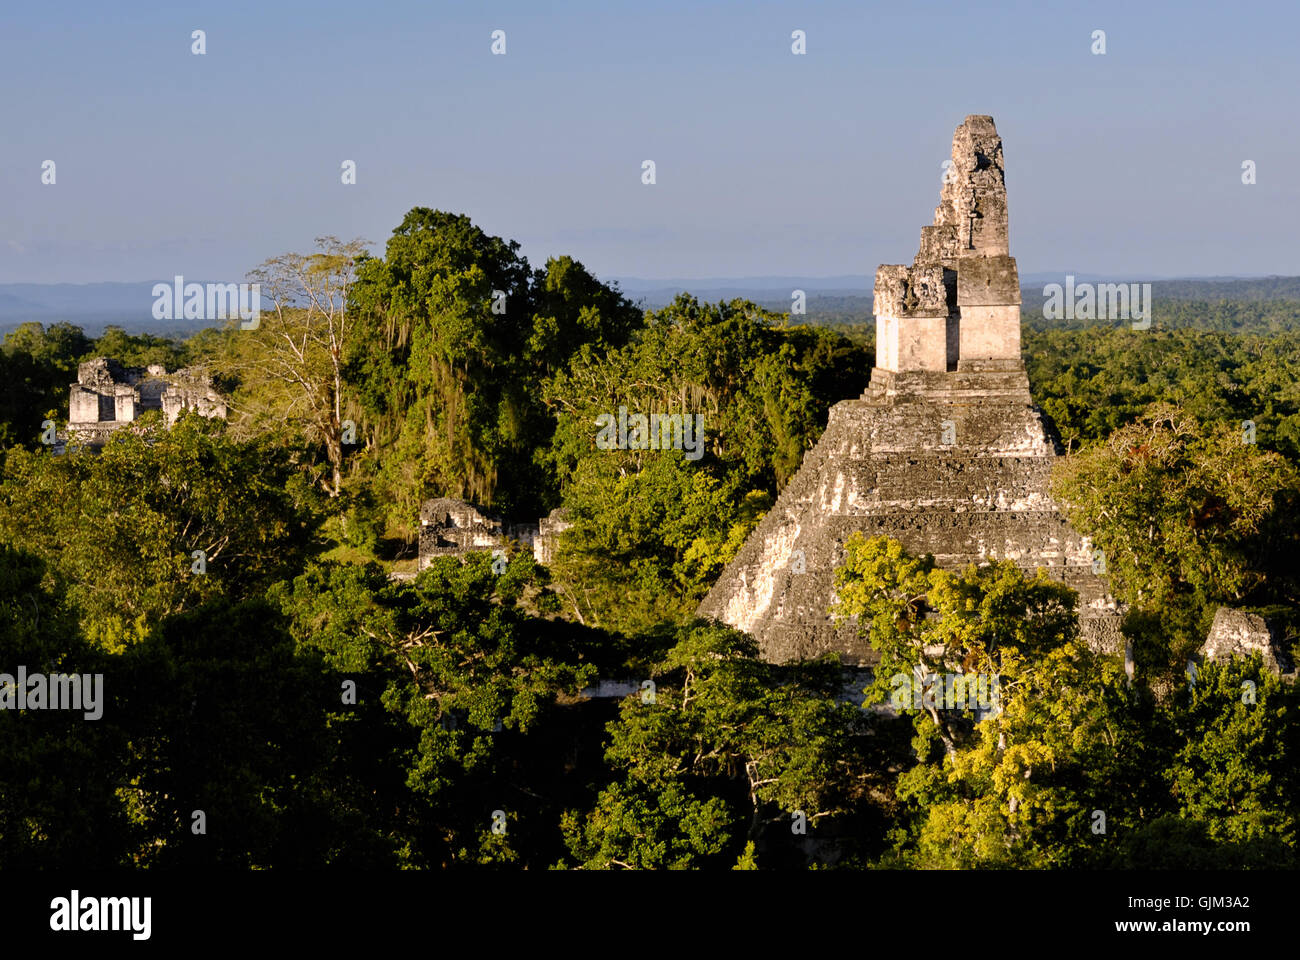 sightseeing central america ruins - Stock Image